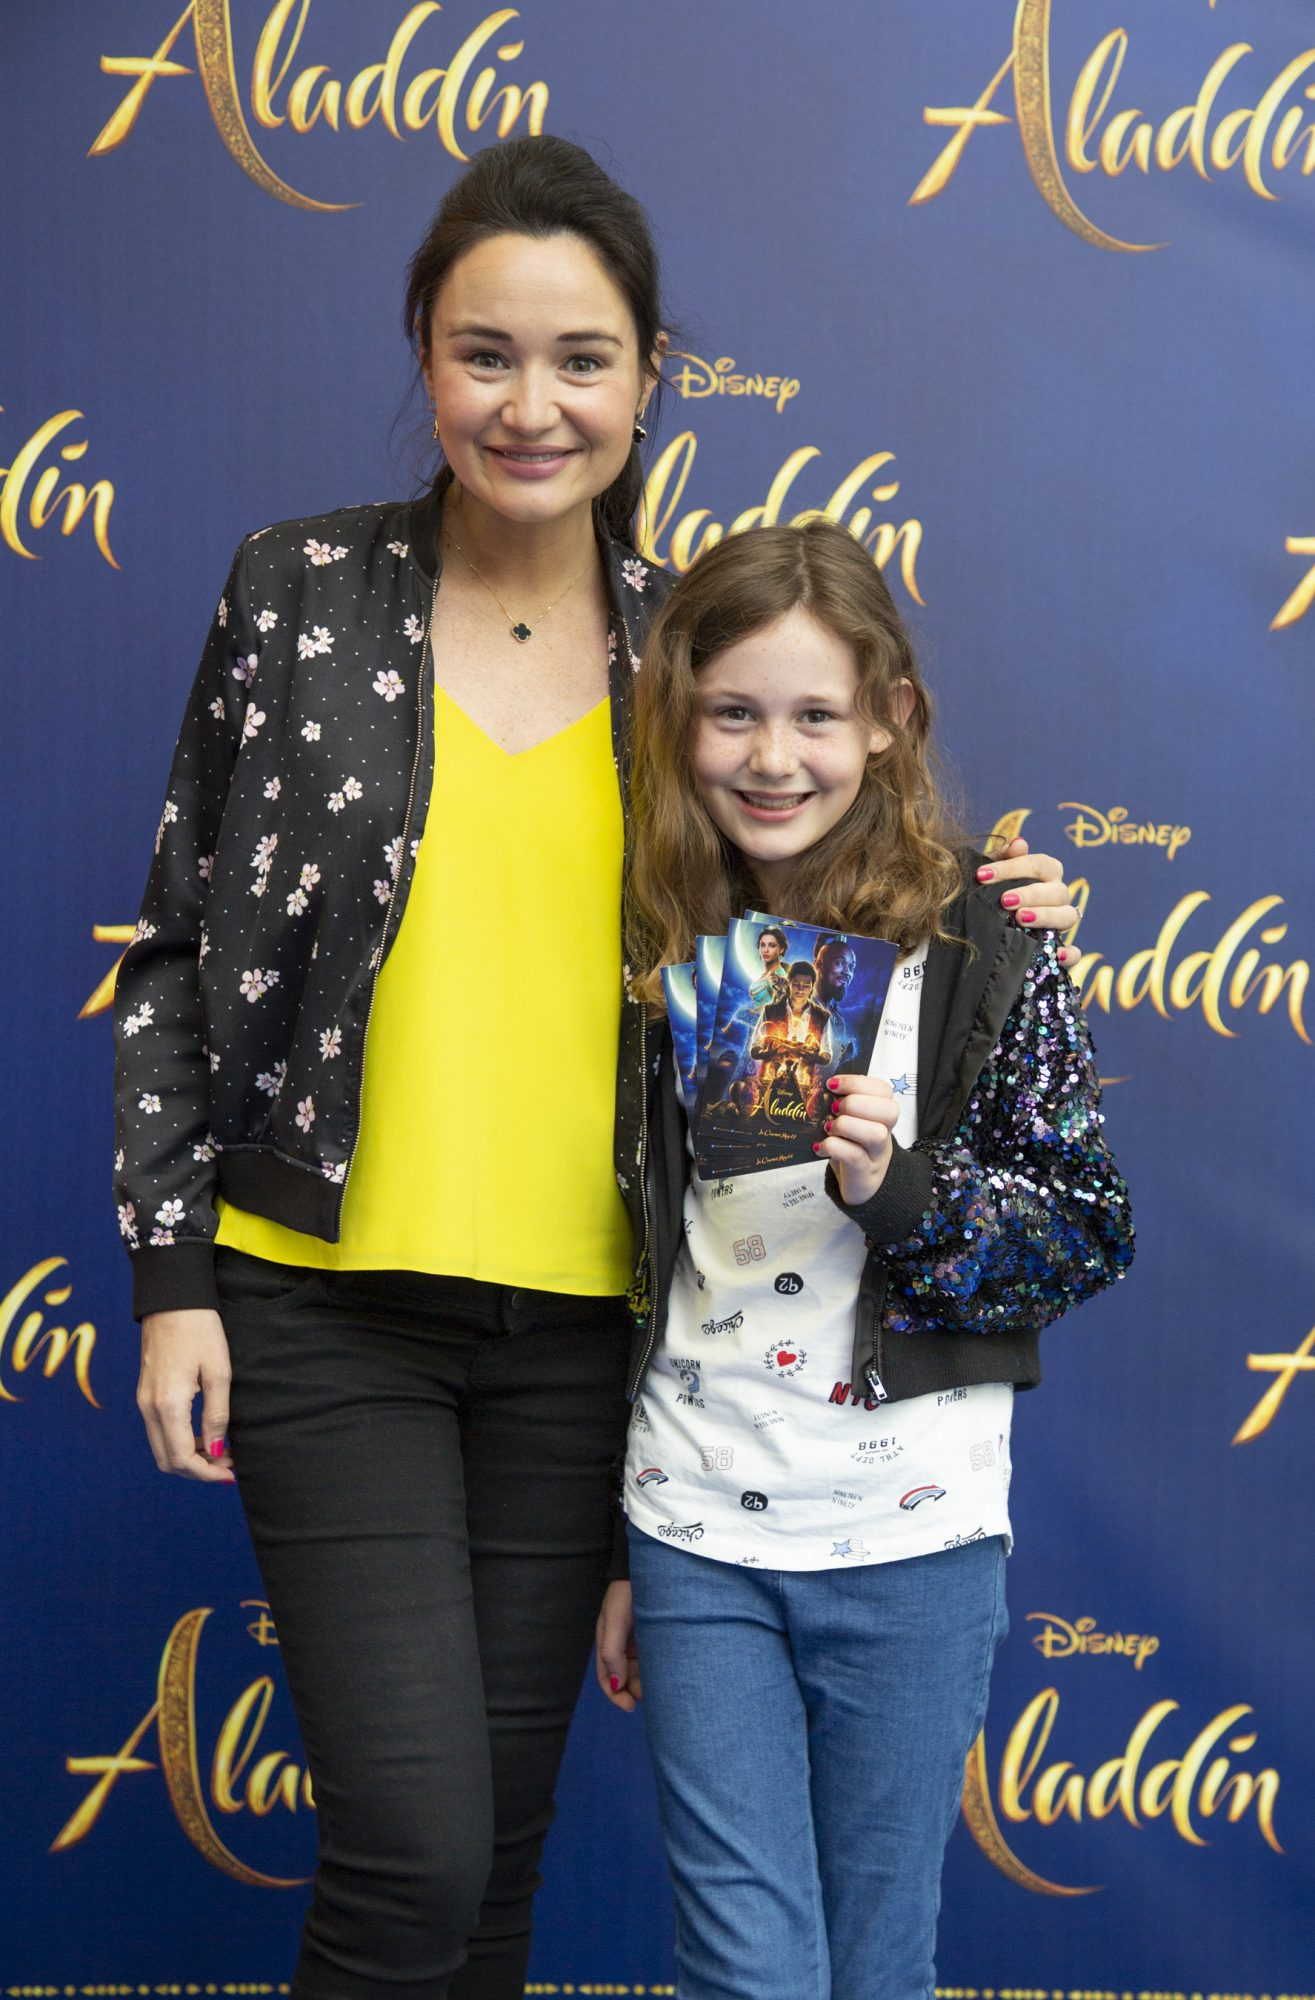 Lucy O'Driscoll Edge & Juliette O'Driscoll Brereton pictured at the special preview screening of Disney's 'Aladdin' at the Odeon Point Village. Photo: Anthony Woods